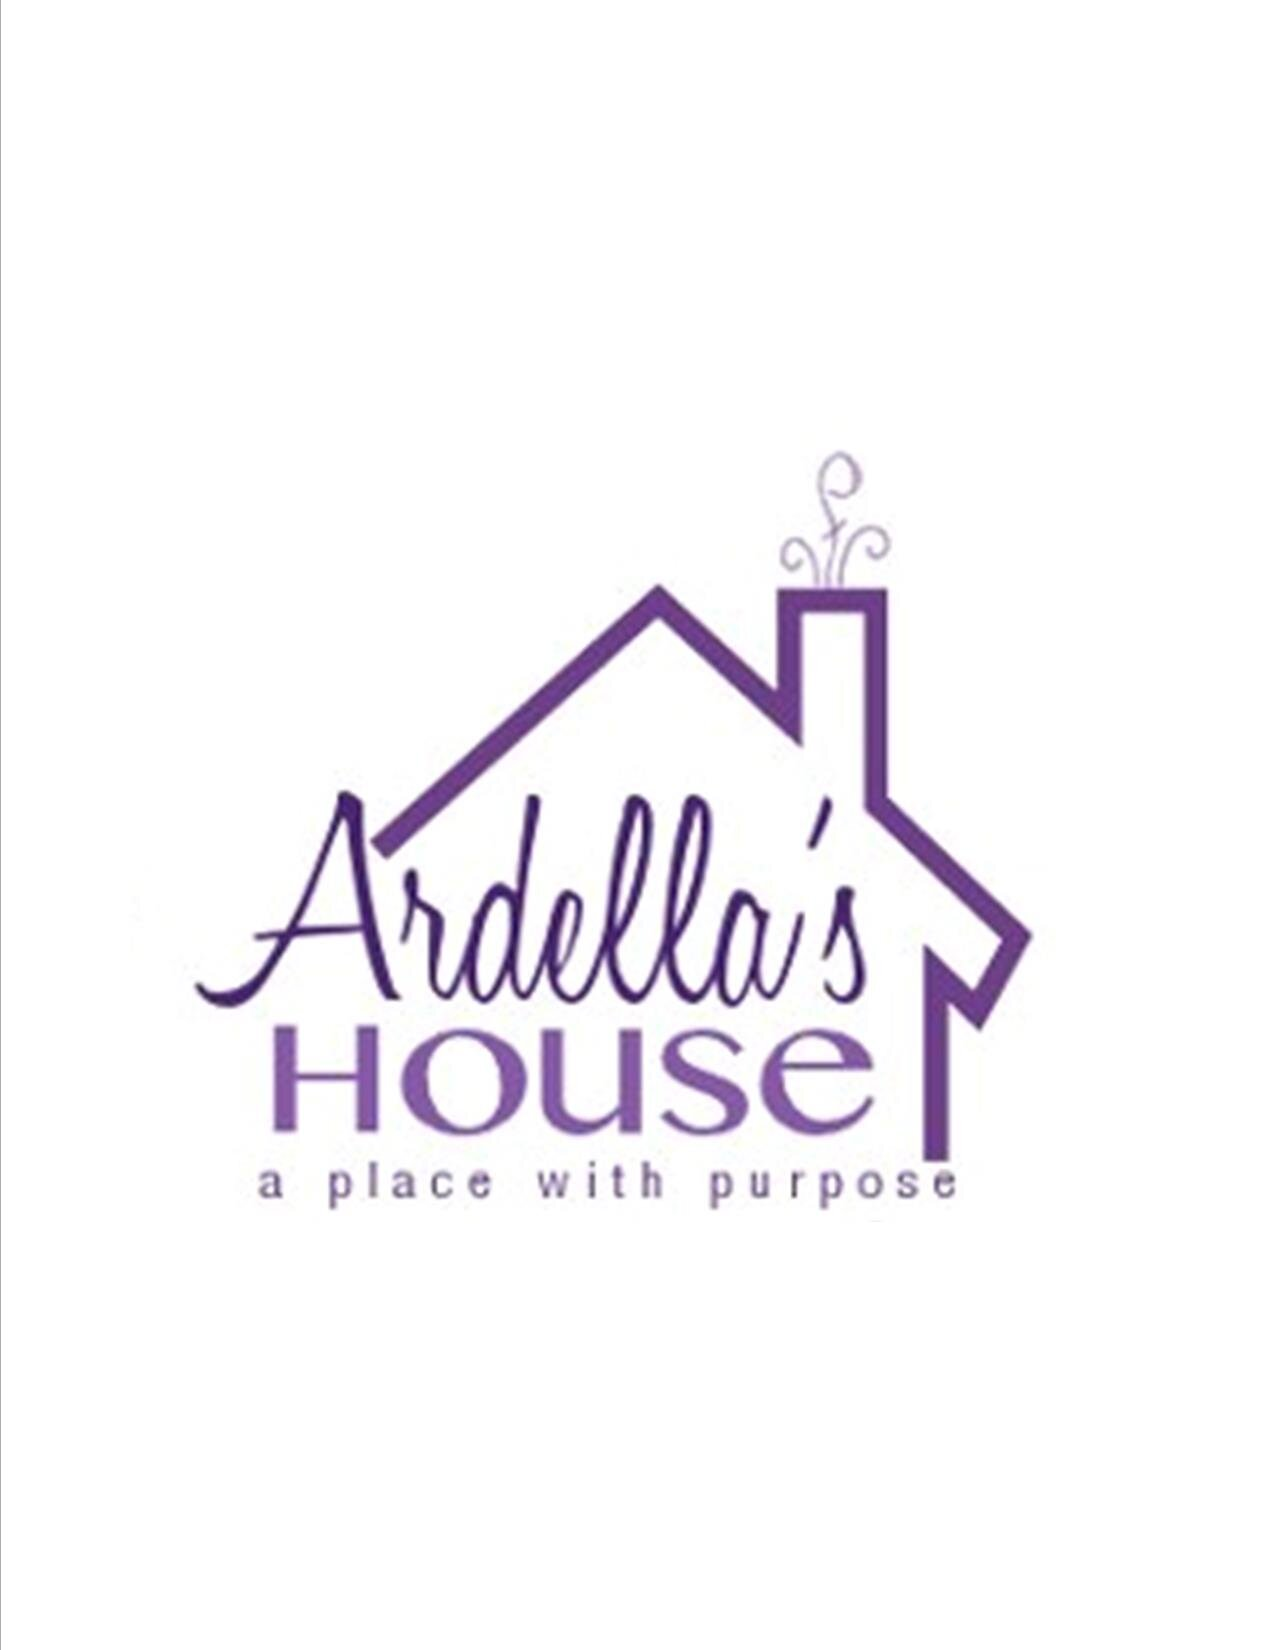 Image result for Ardella's house logo